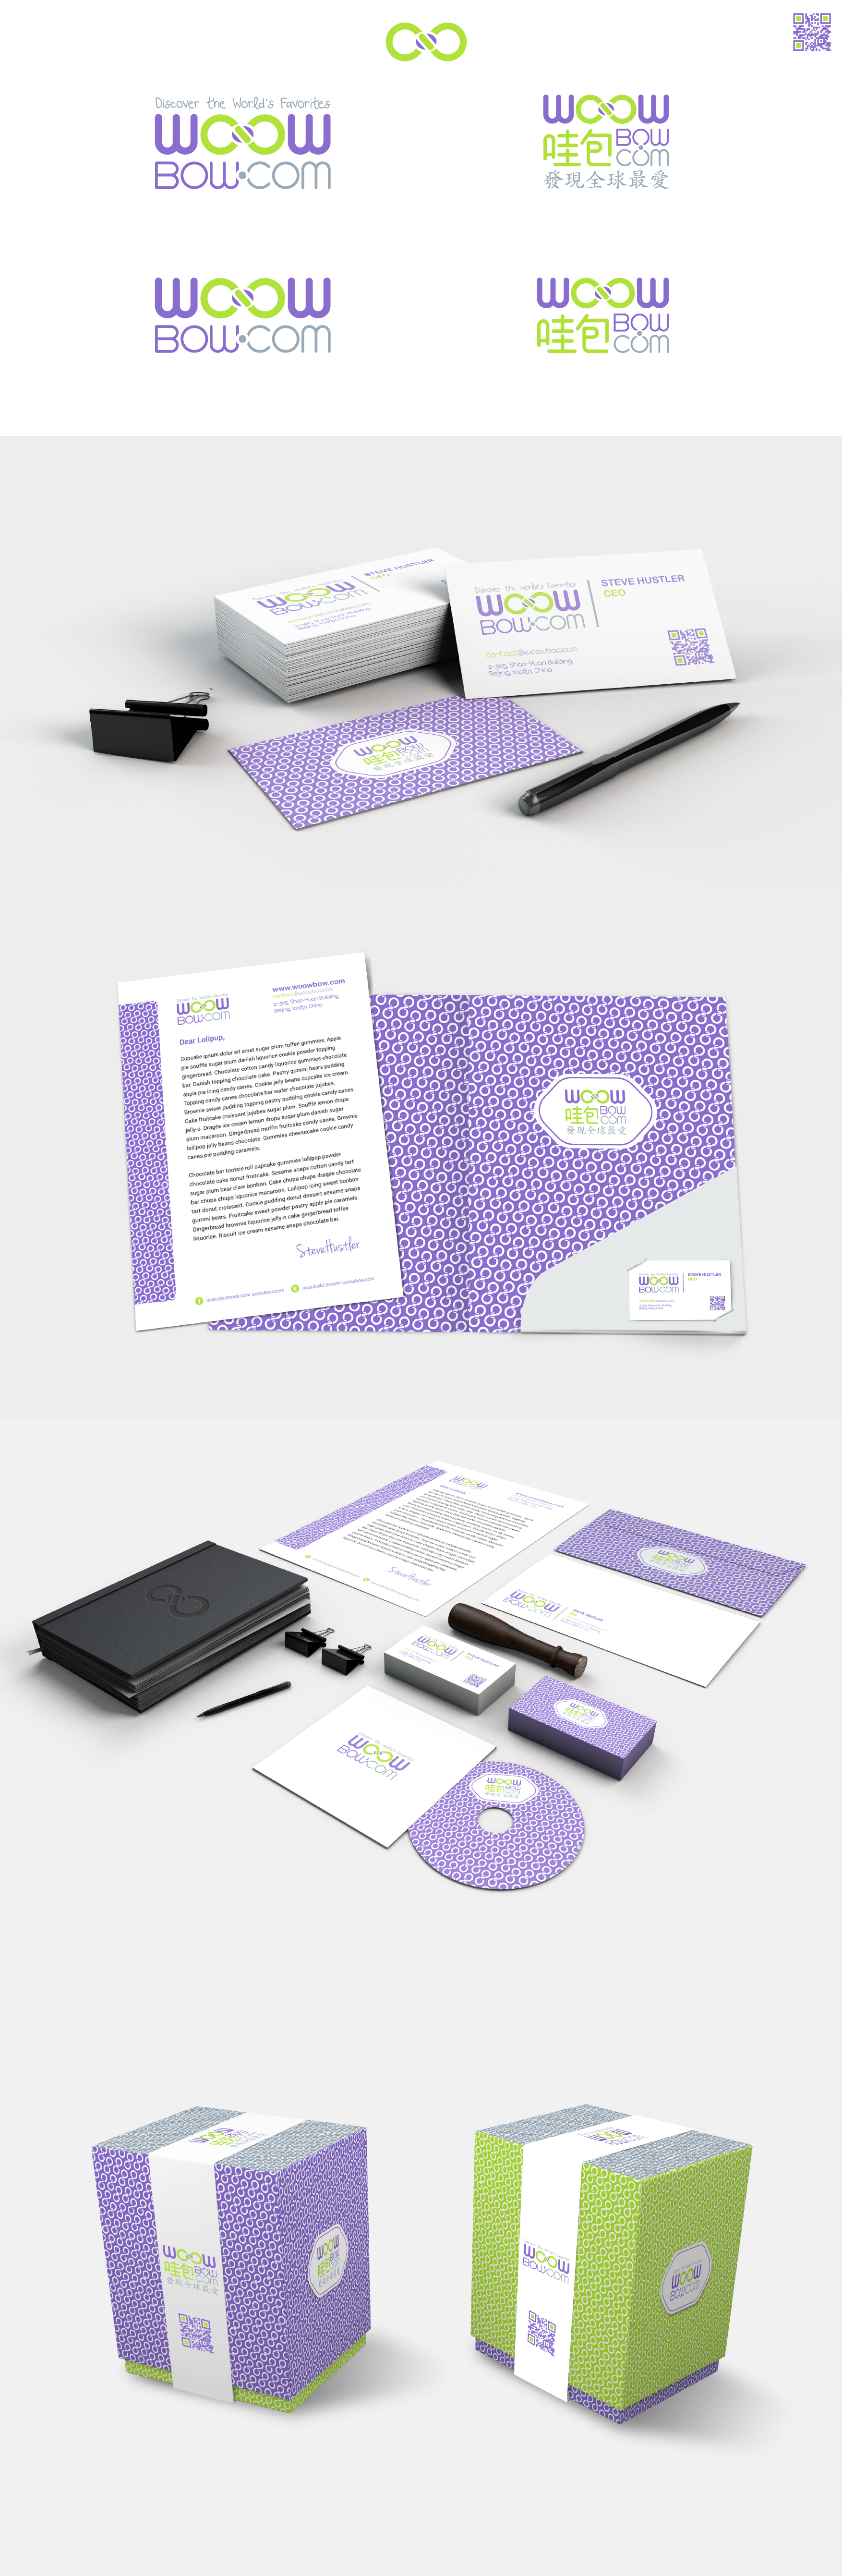 WOO_BOW_stationery_final-01